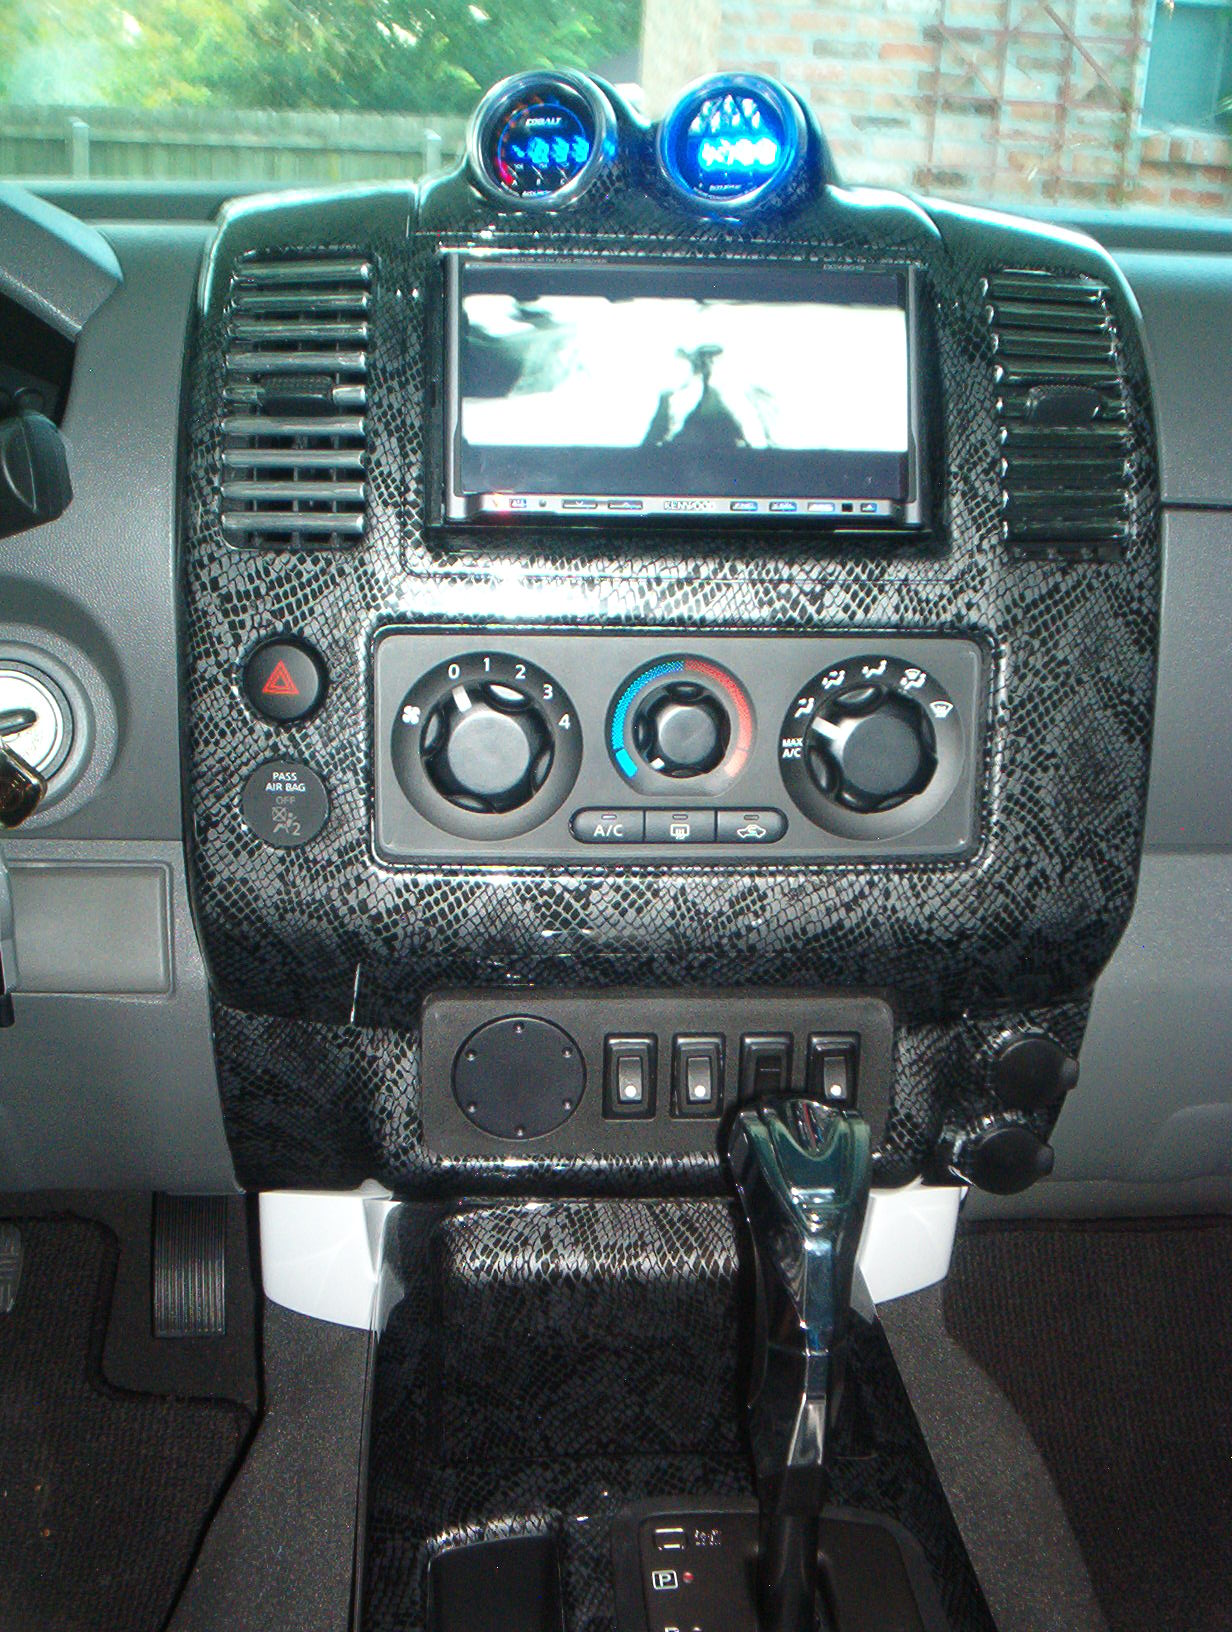 2005 Nissan Xterra Speaker Size Recomended Car Diagram Of 2007 Maxima Fuse Panel Snakeskin Center Console And Dash Page 3 Frontier Forum